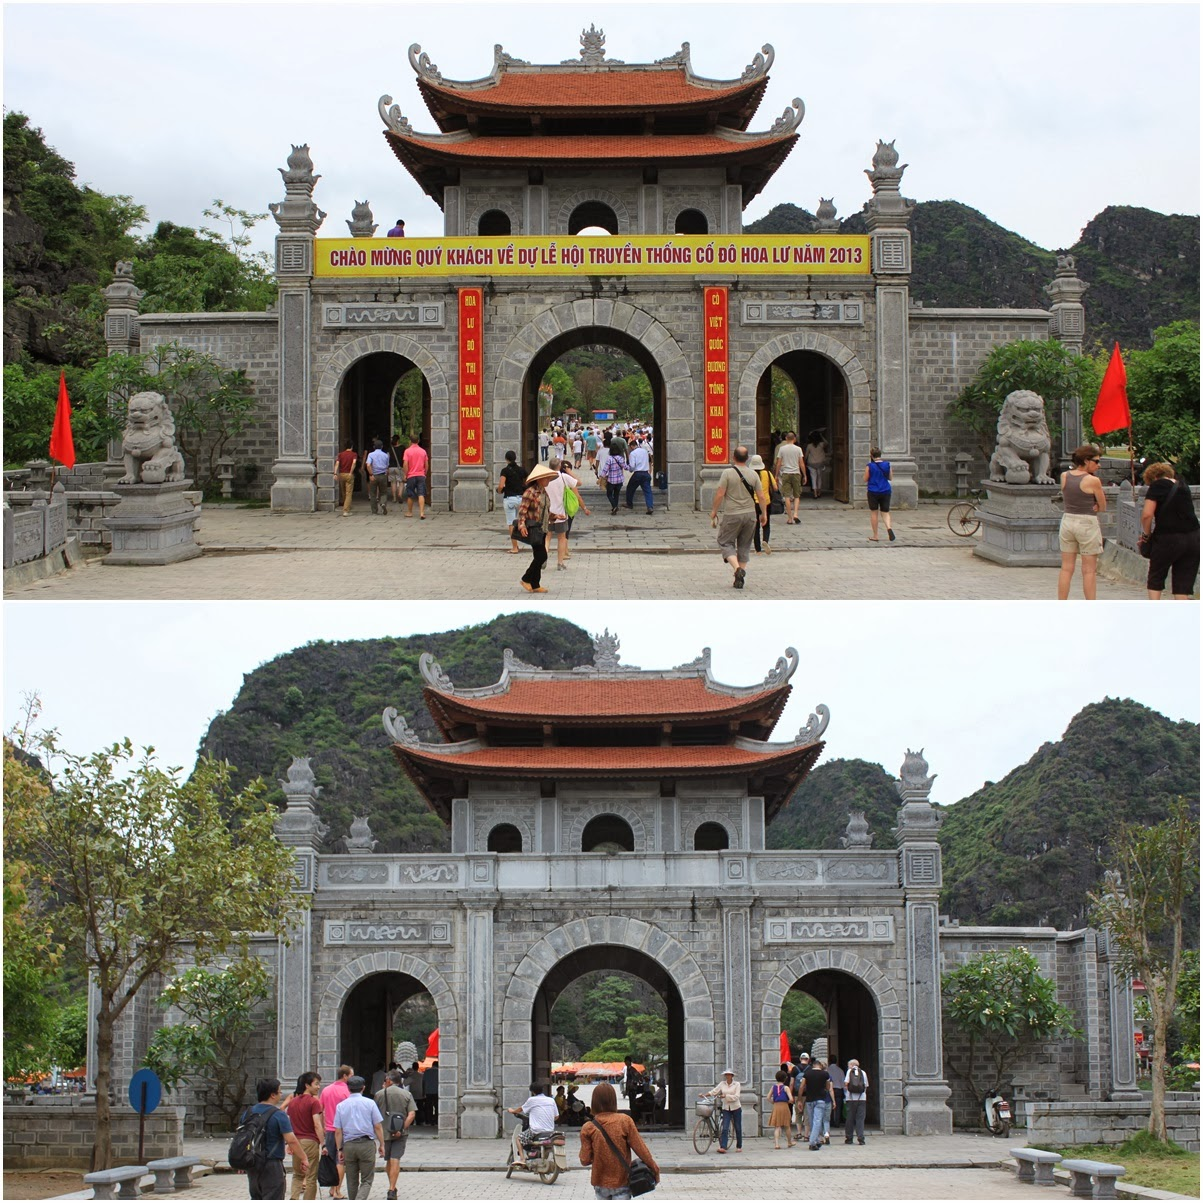 The front (top) and rear (bottom) views of the main Gateway to King Ðinh Tiên Hoàng Temple at Hoa Lu capital in Vietnam